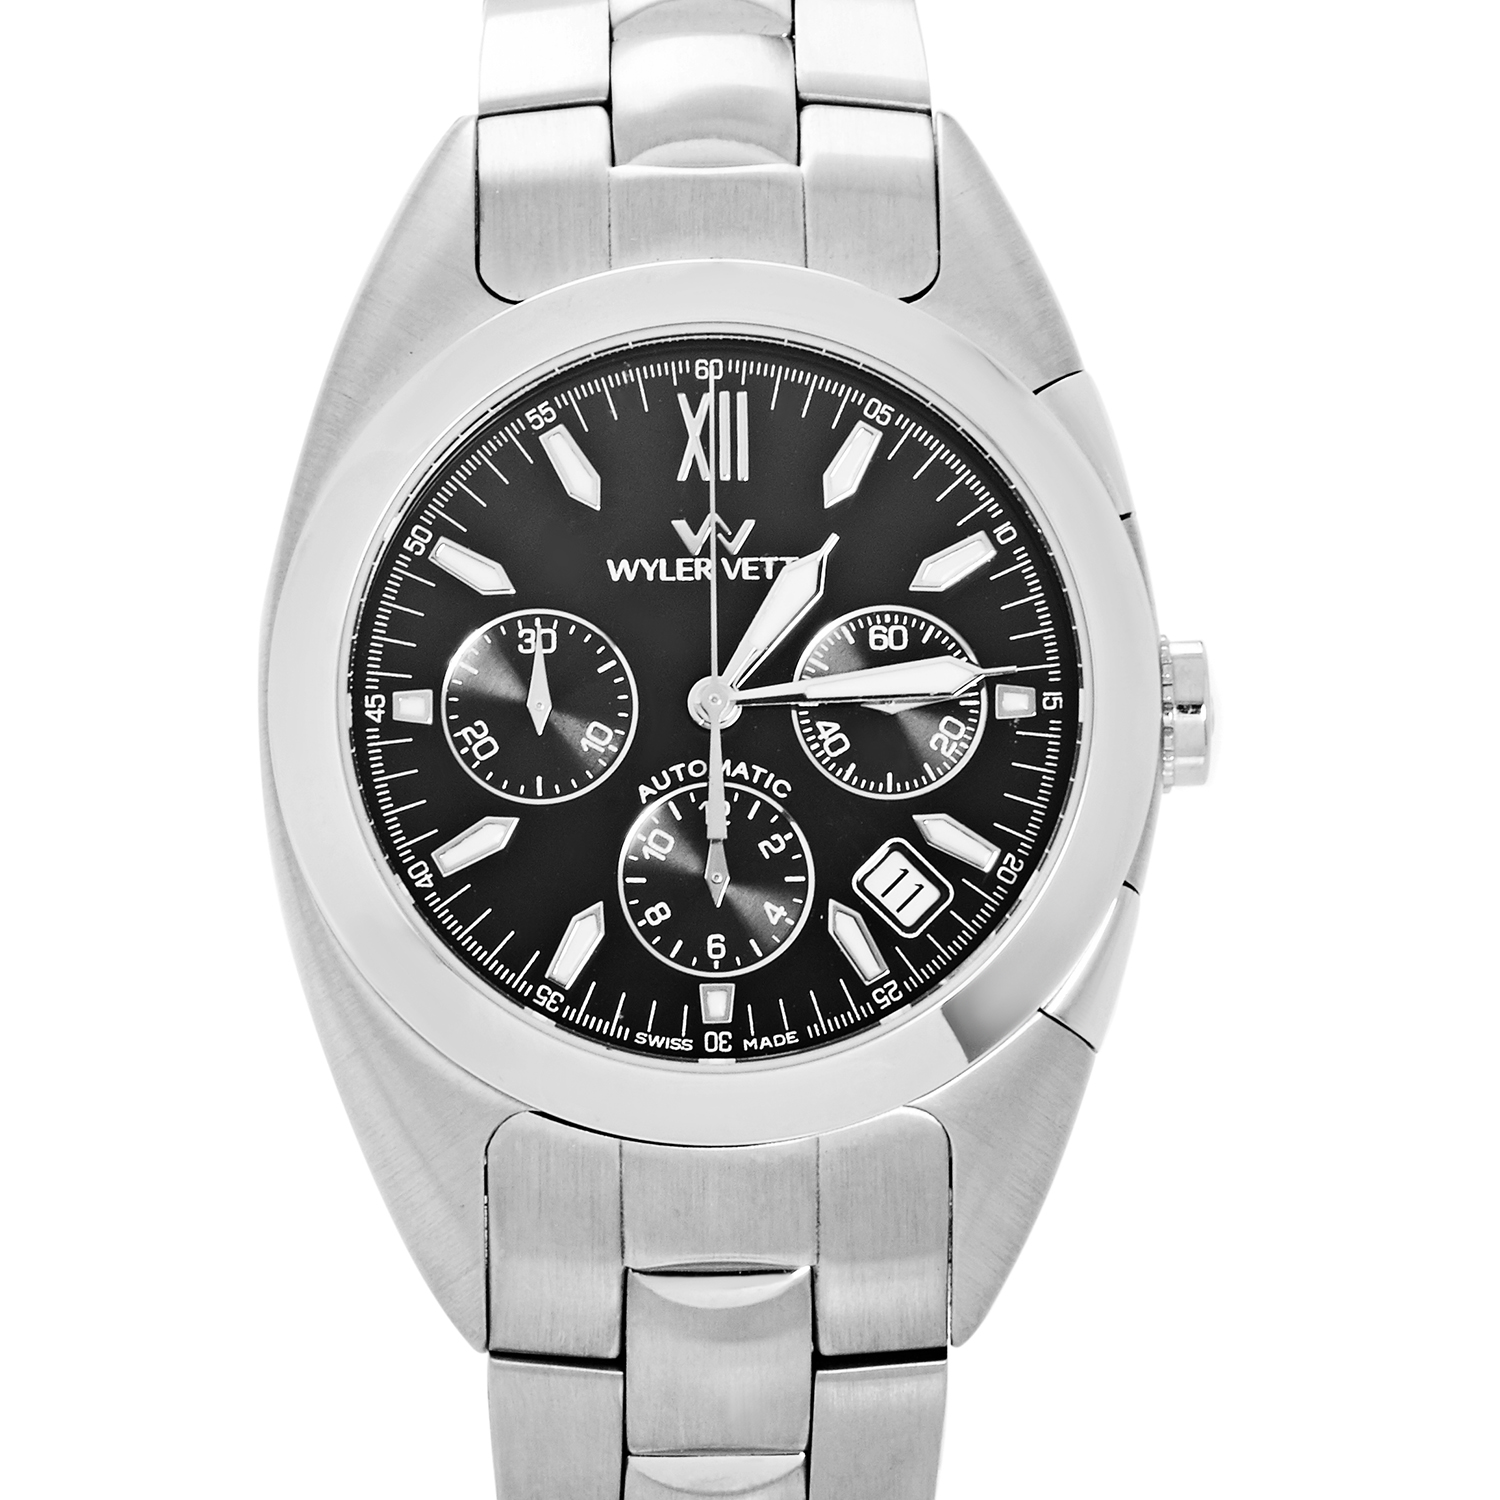 Men's Stainless Steel Automatic Chronograph Watch 8116770352